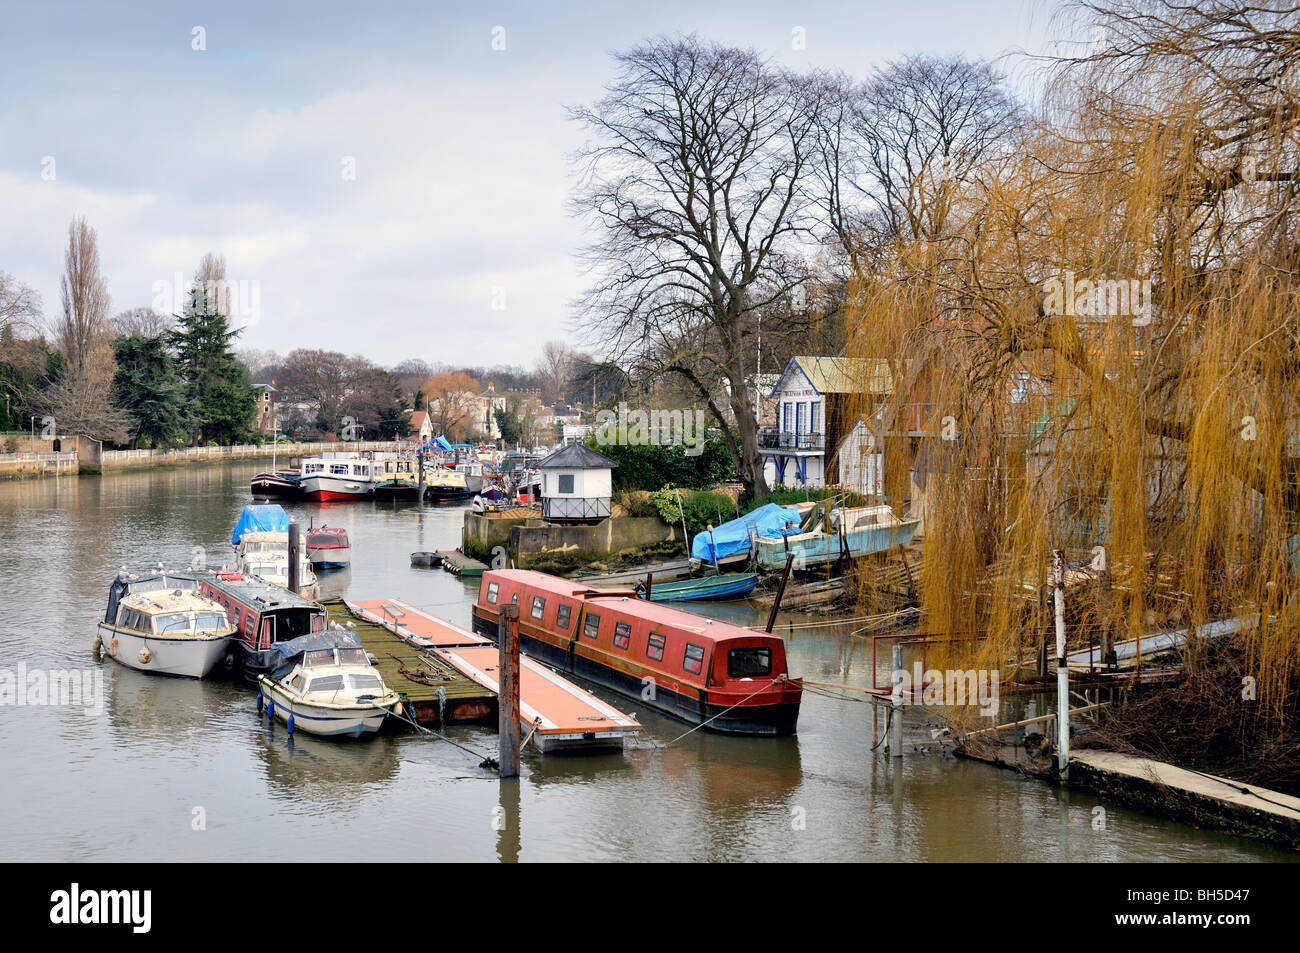 River Thames and Eel Pie Island  Twickenham,West London England UK - Stock Image